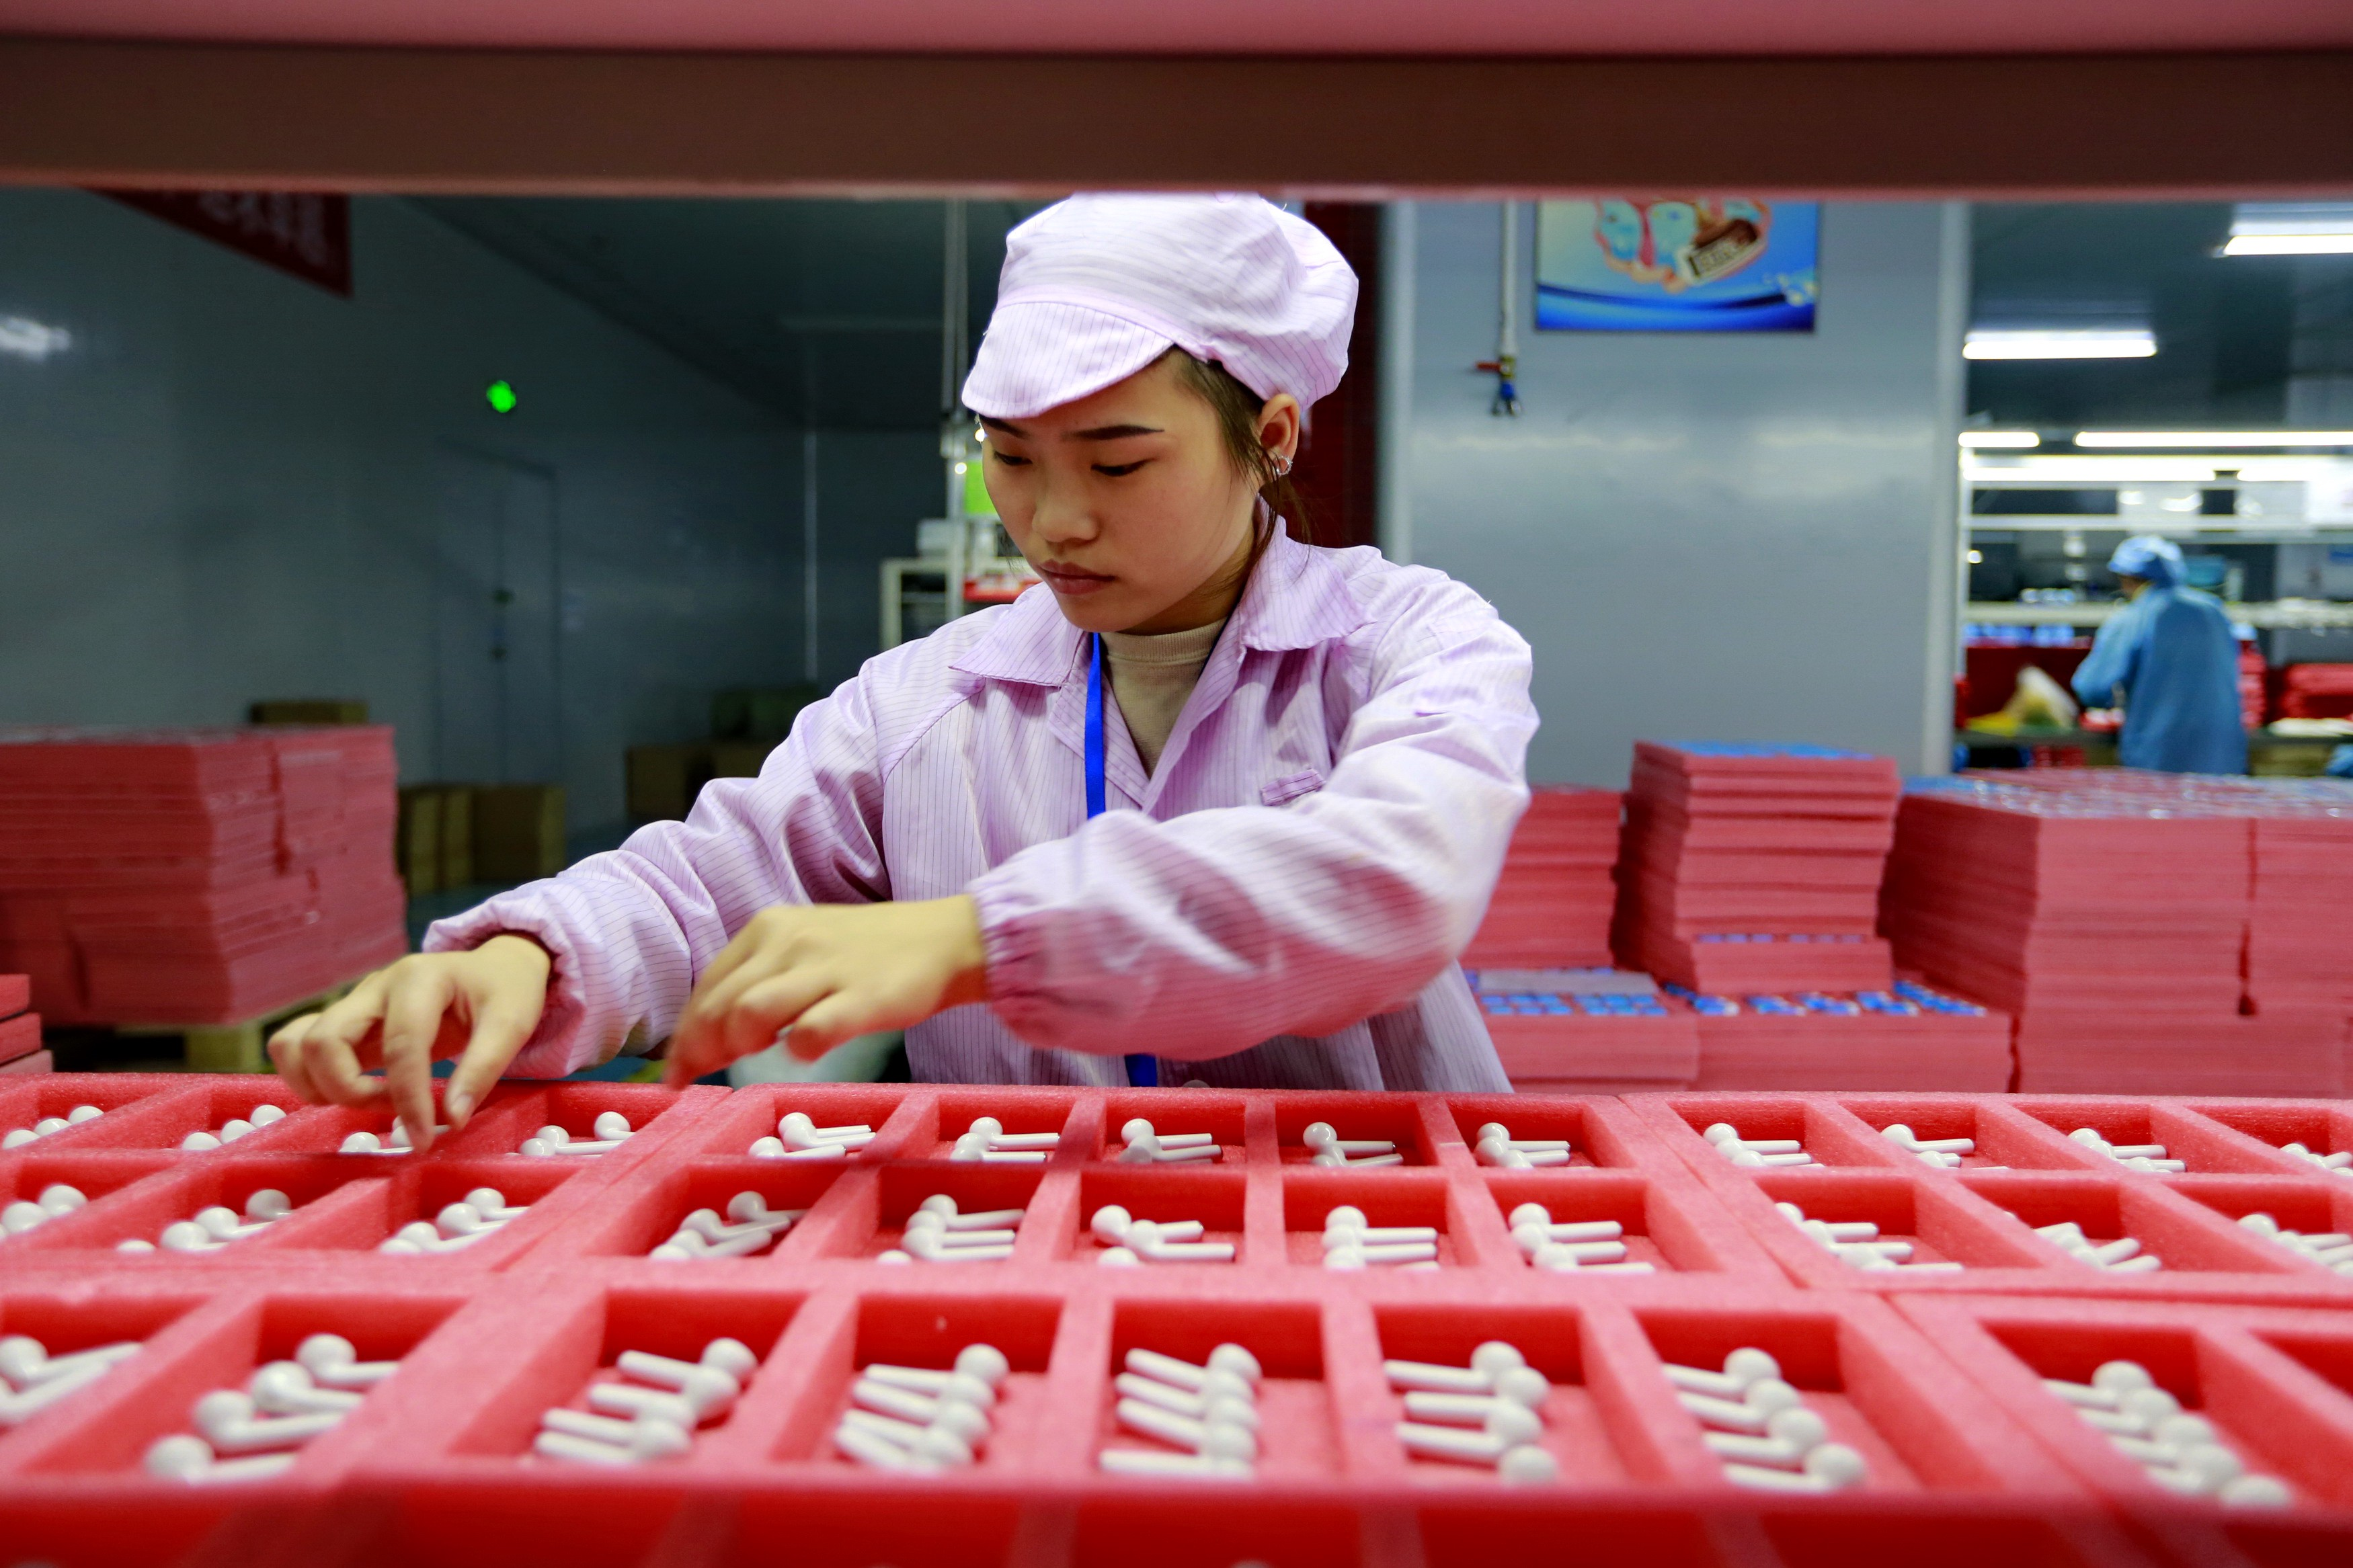 A woman worker assembles earphones for export in a factory in Suining in southwest China's Sichuan province on Dec. 17, 2019.